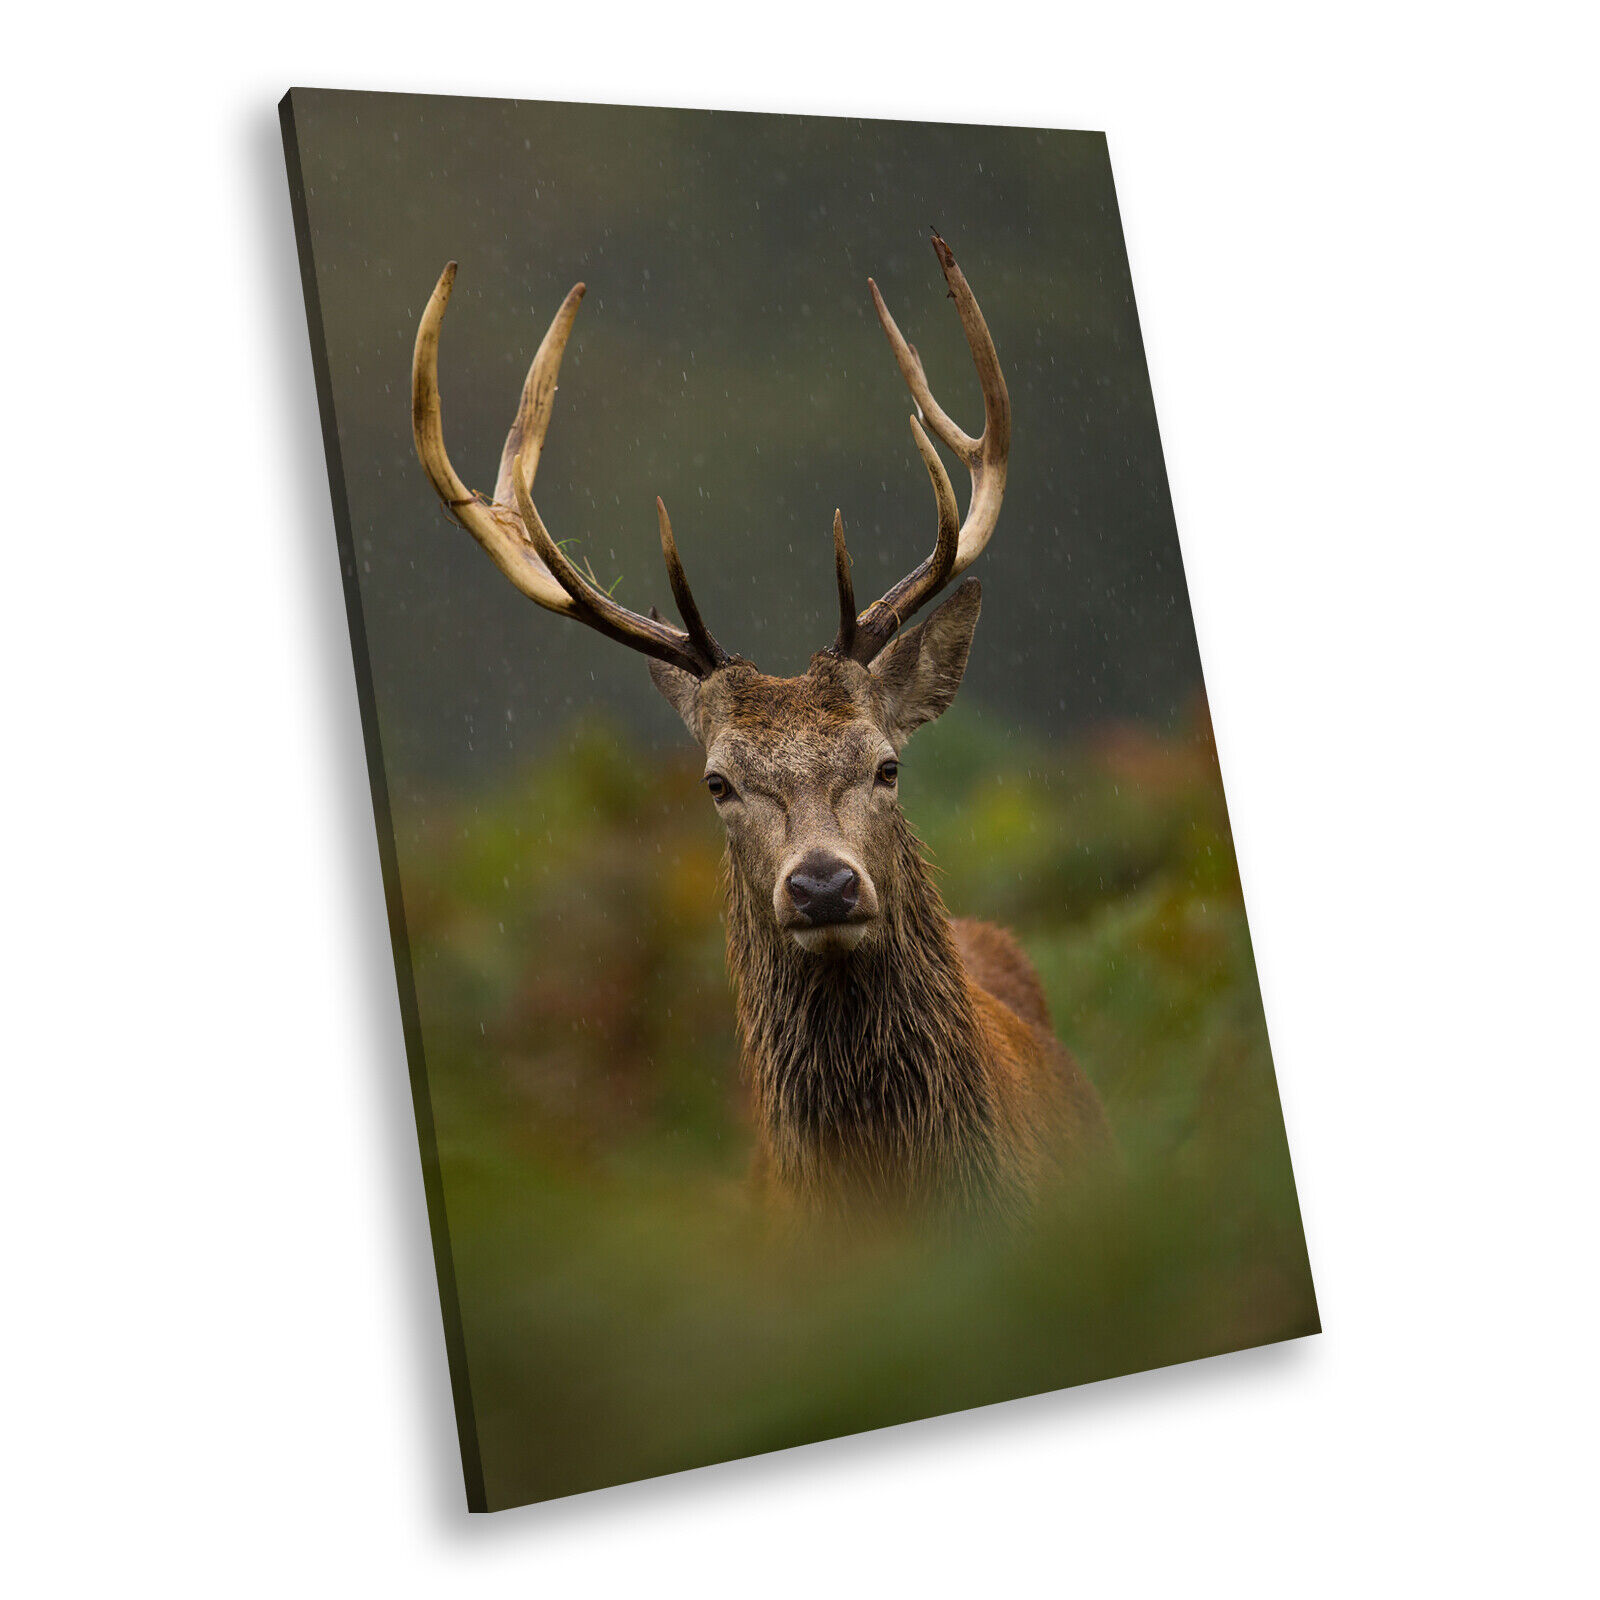 Stag Deer Grün Grass braun Portrait Animal Canvas Framed Art Picture